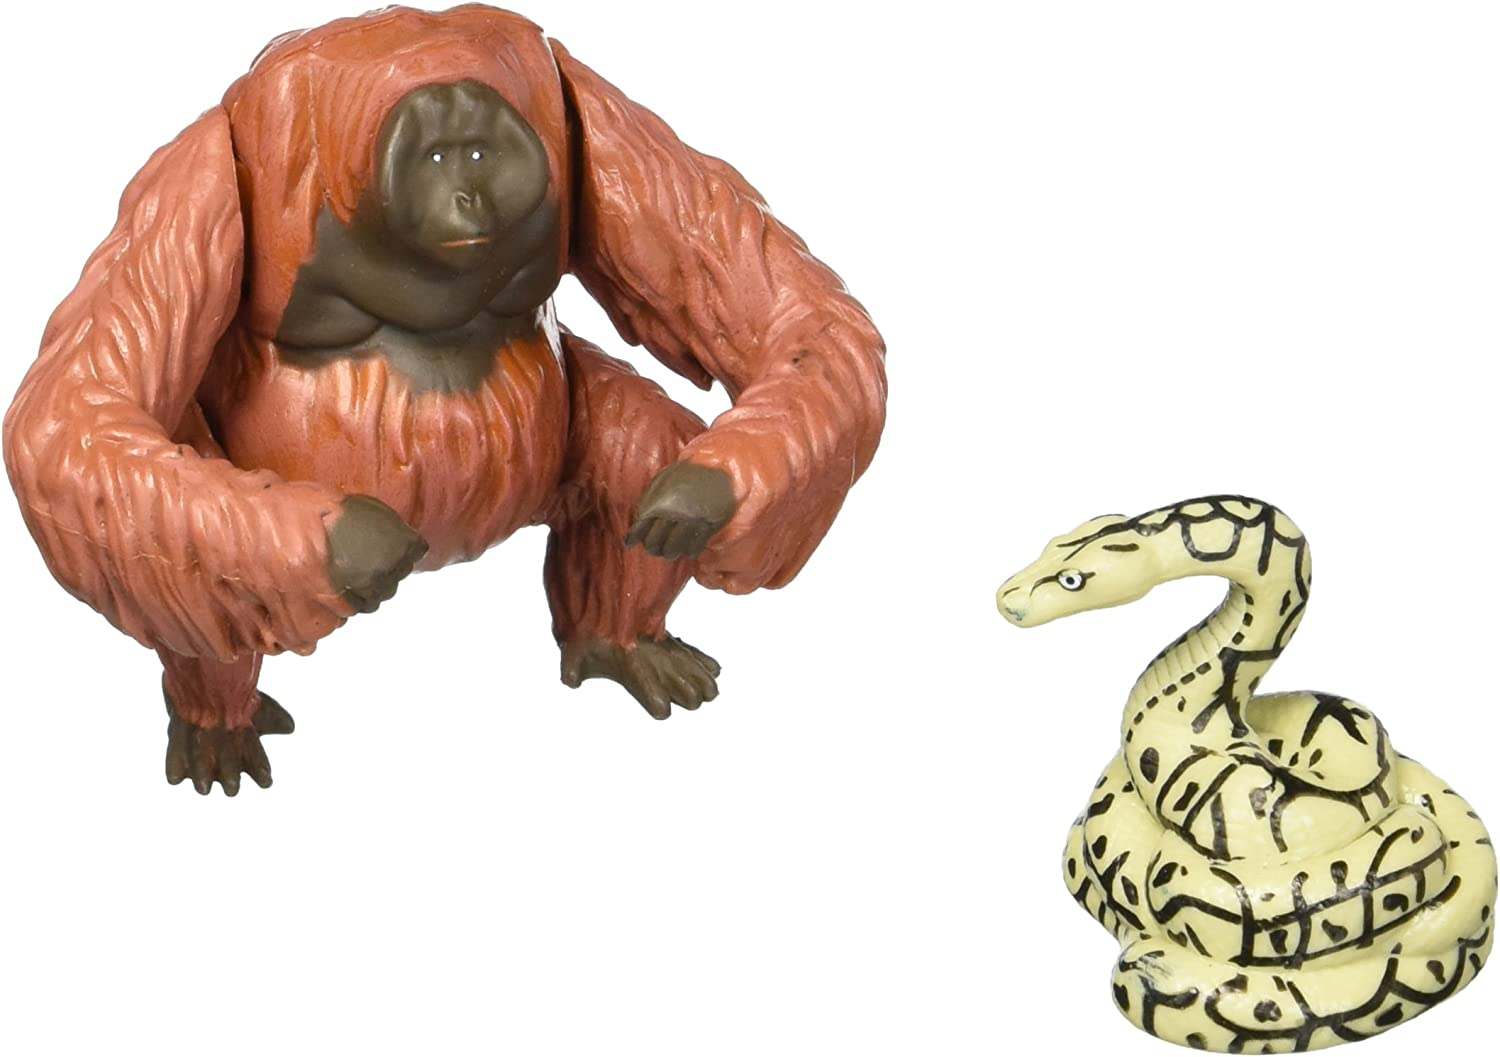 Disney Jungle Book King Louie and Kaa Action Figures by Disney